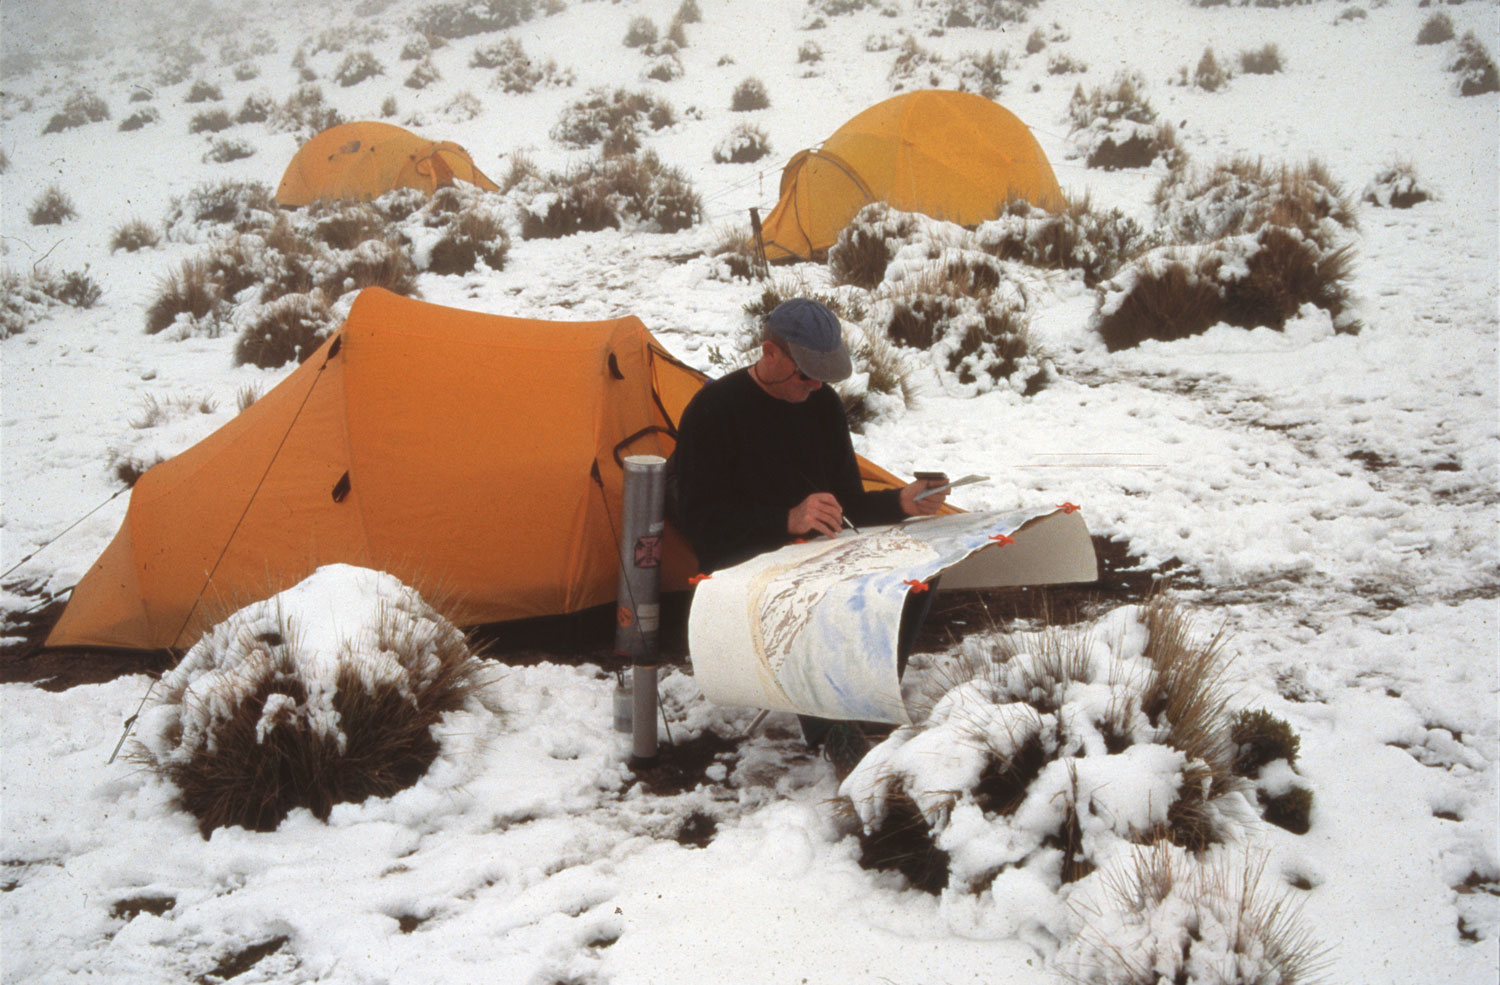 Tony Foster painting the volcano Nevado Sajama, Bolivia. 1997. Photo by Bill Vanderbilt. Courtesy of Foster Art & Wilderness Foundation.